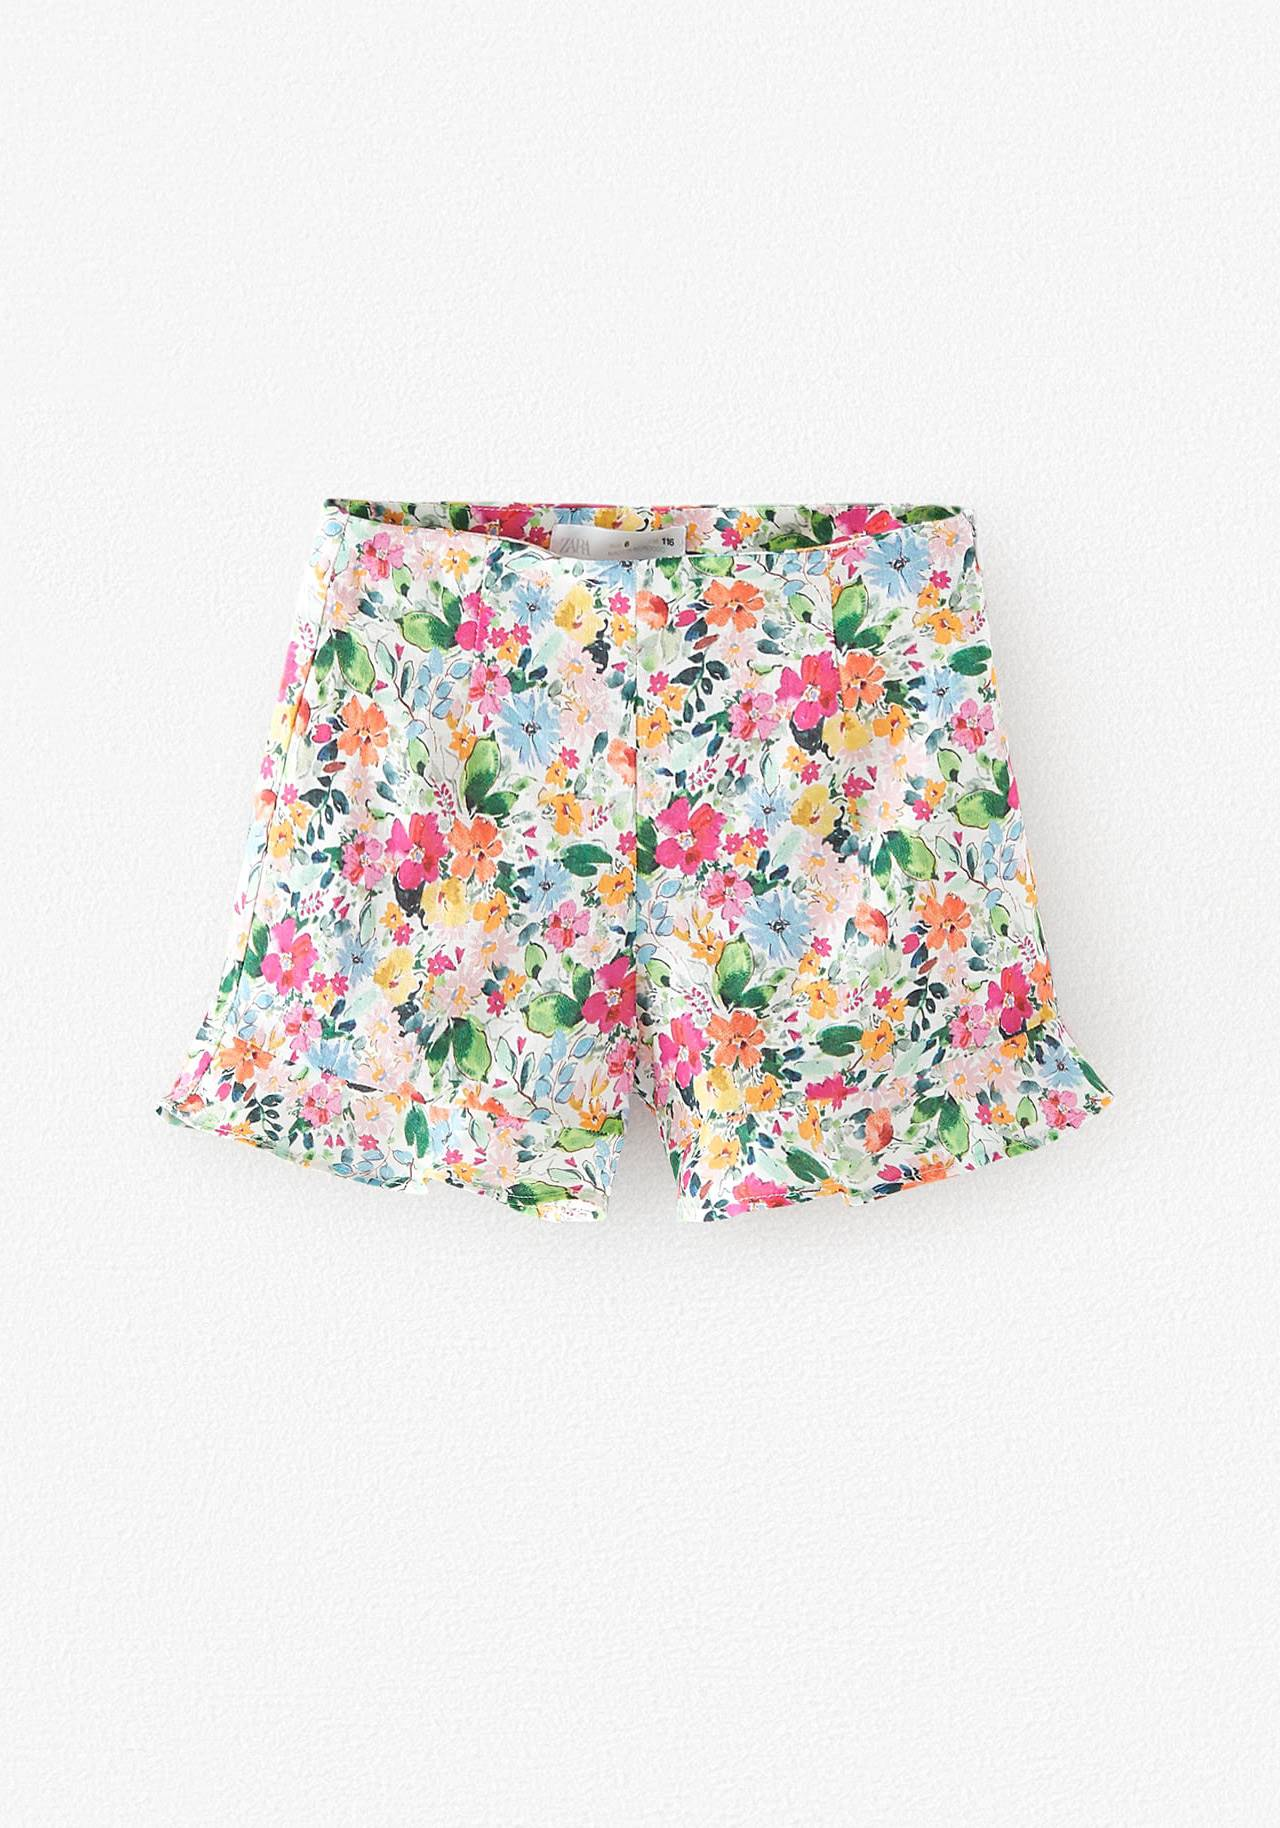 zara kids bajitas short